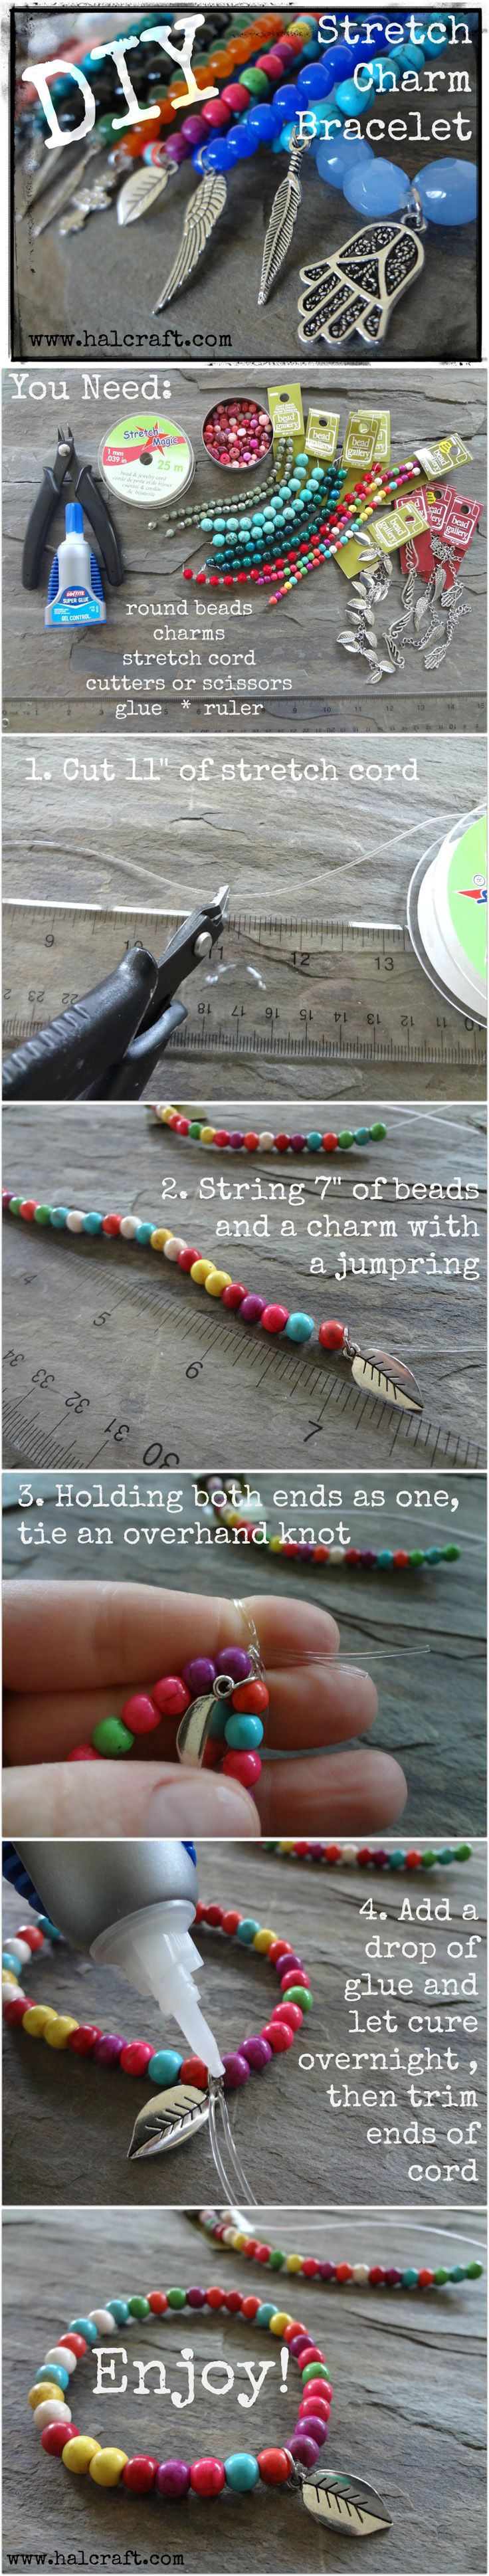 Learn how to make stretch charm bracelets and tie a knot that holds with this photo tutorial! Visit http://www.halcraft.com/step-by-steps/how-to-stretch-bracelets/ for more tips and tricks!